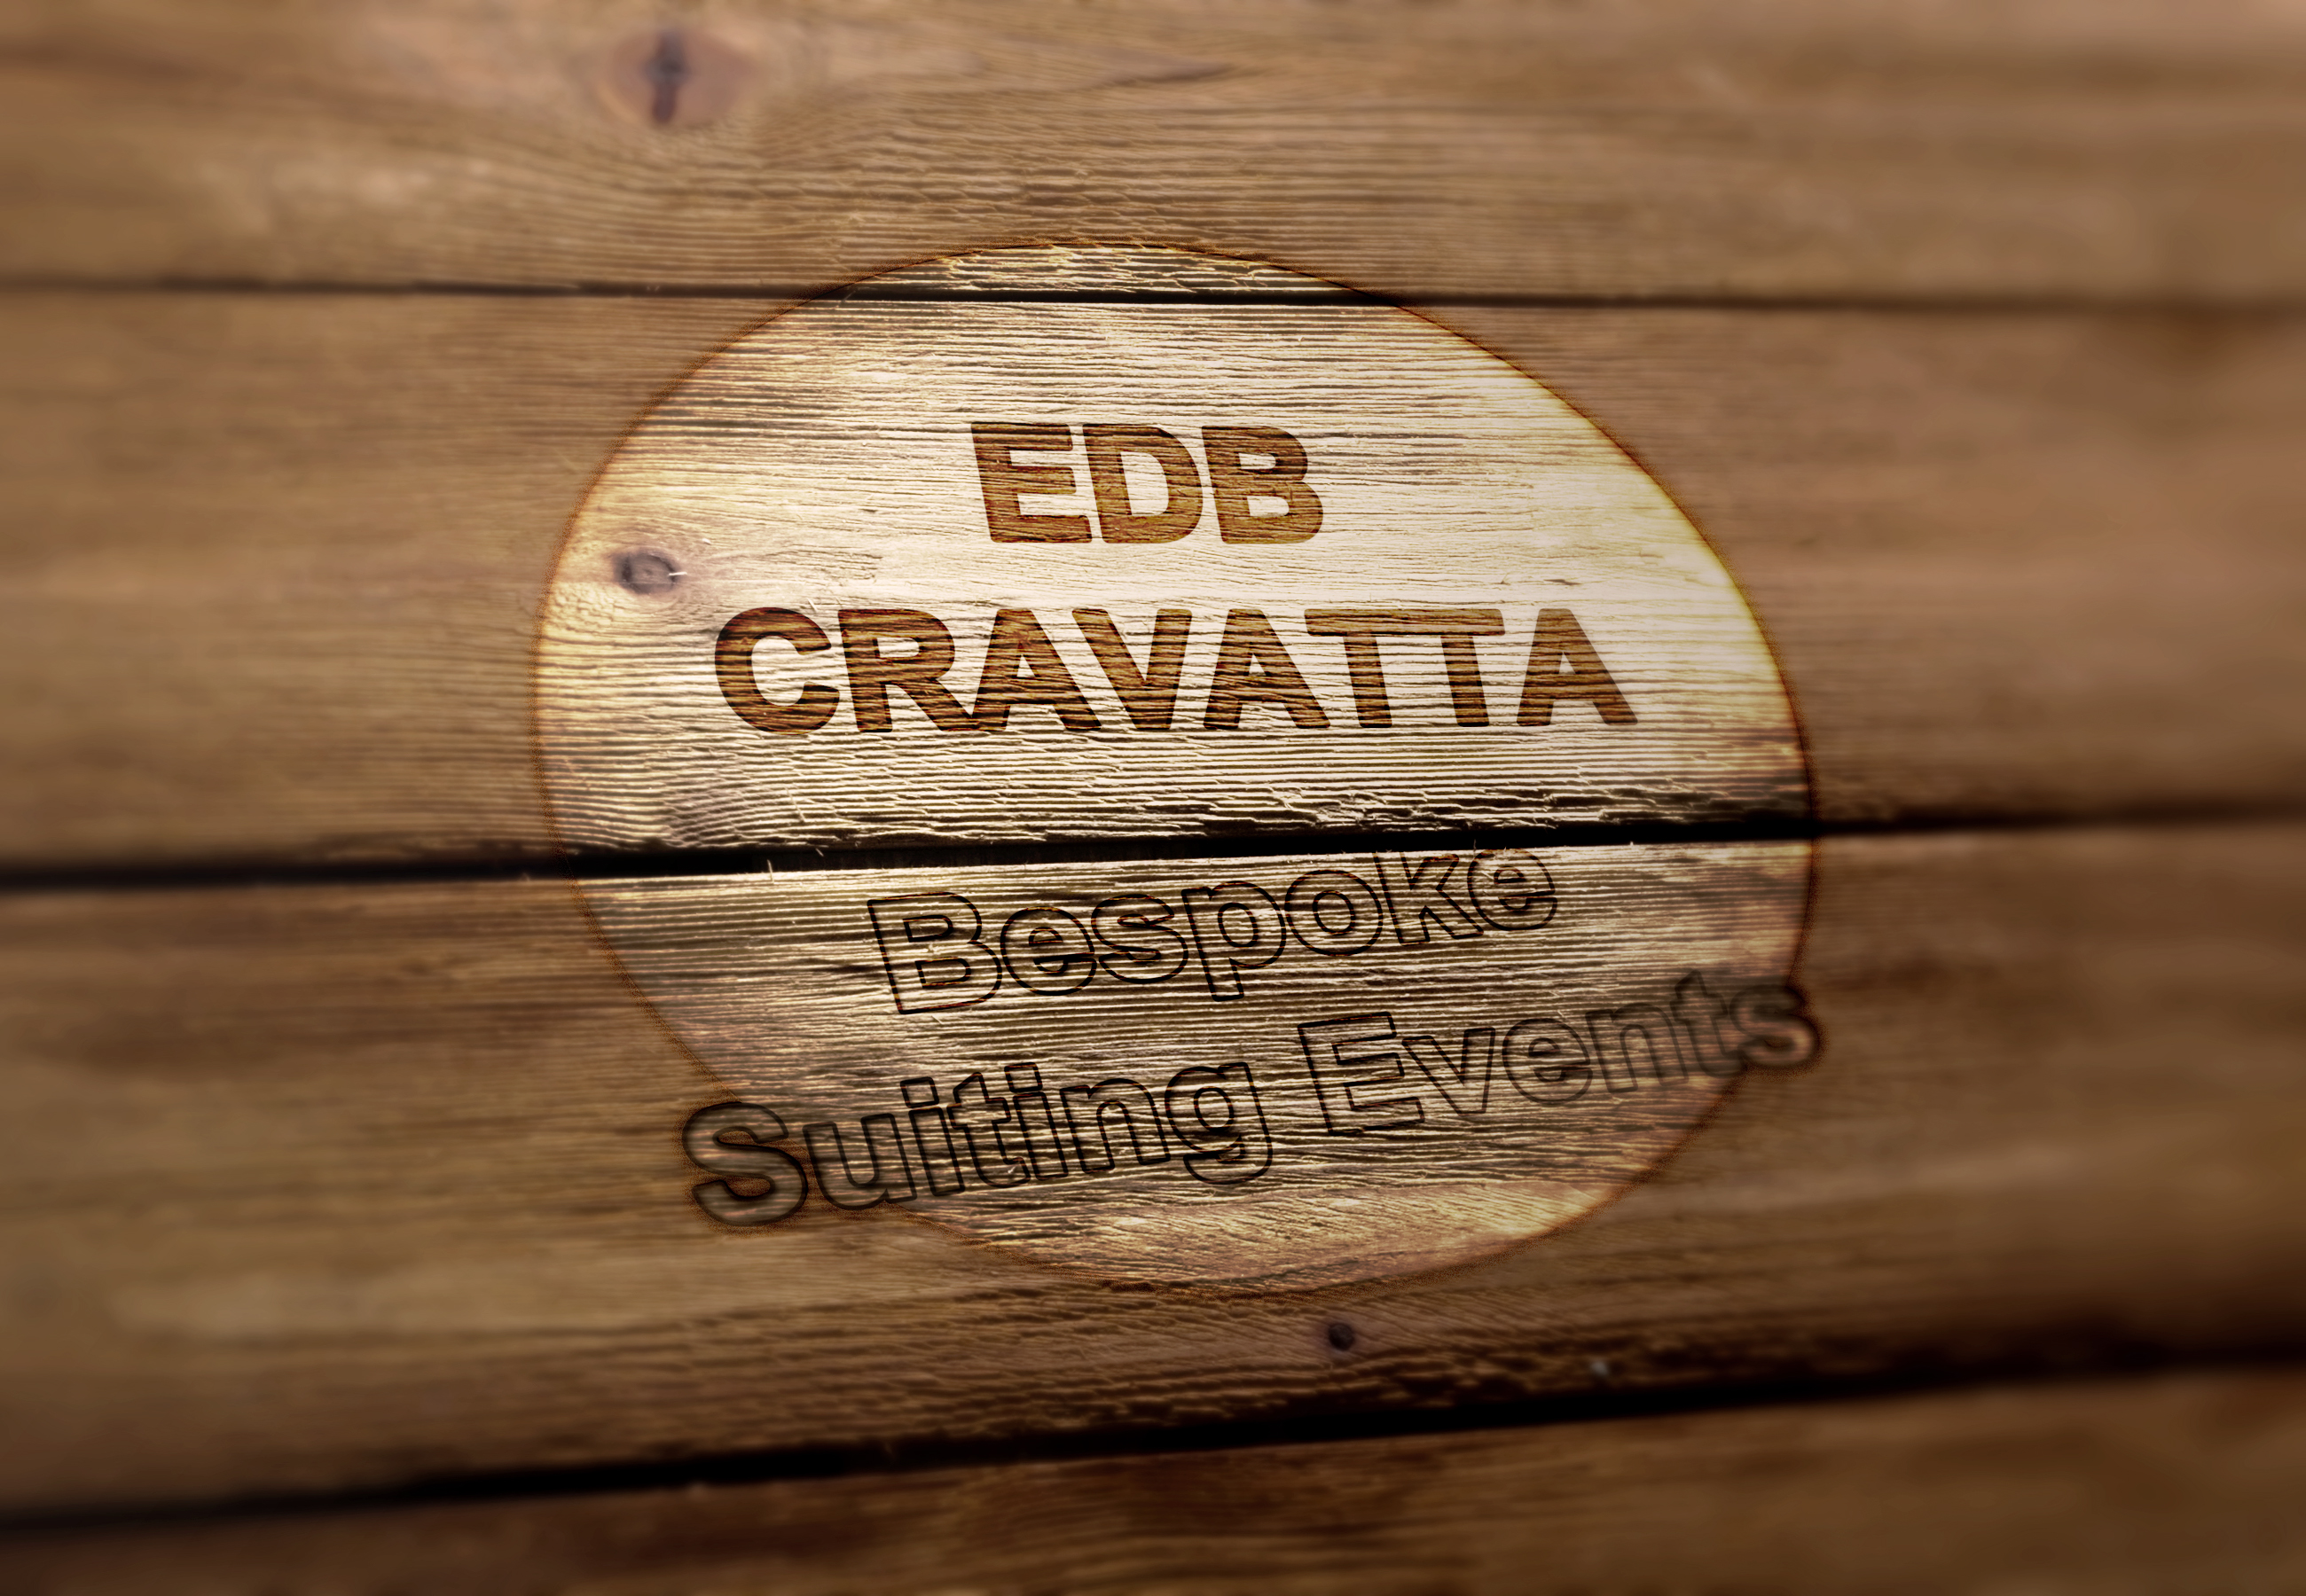 EDB Cravatta - Bespoke Suiting Events, we create events for tailors looking broaden their client base.